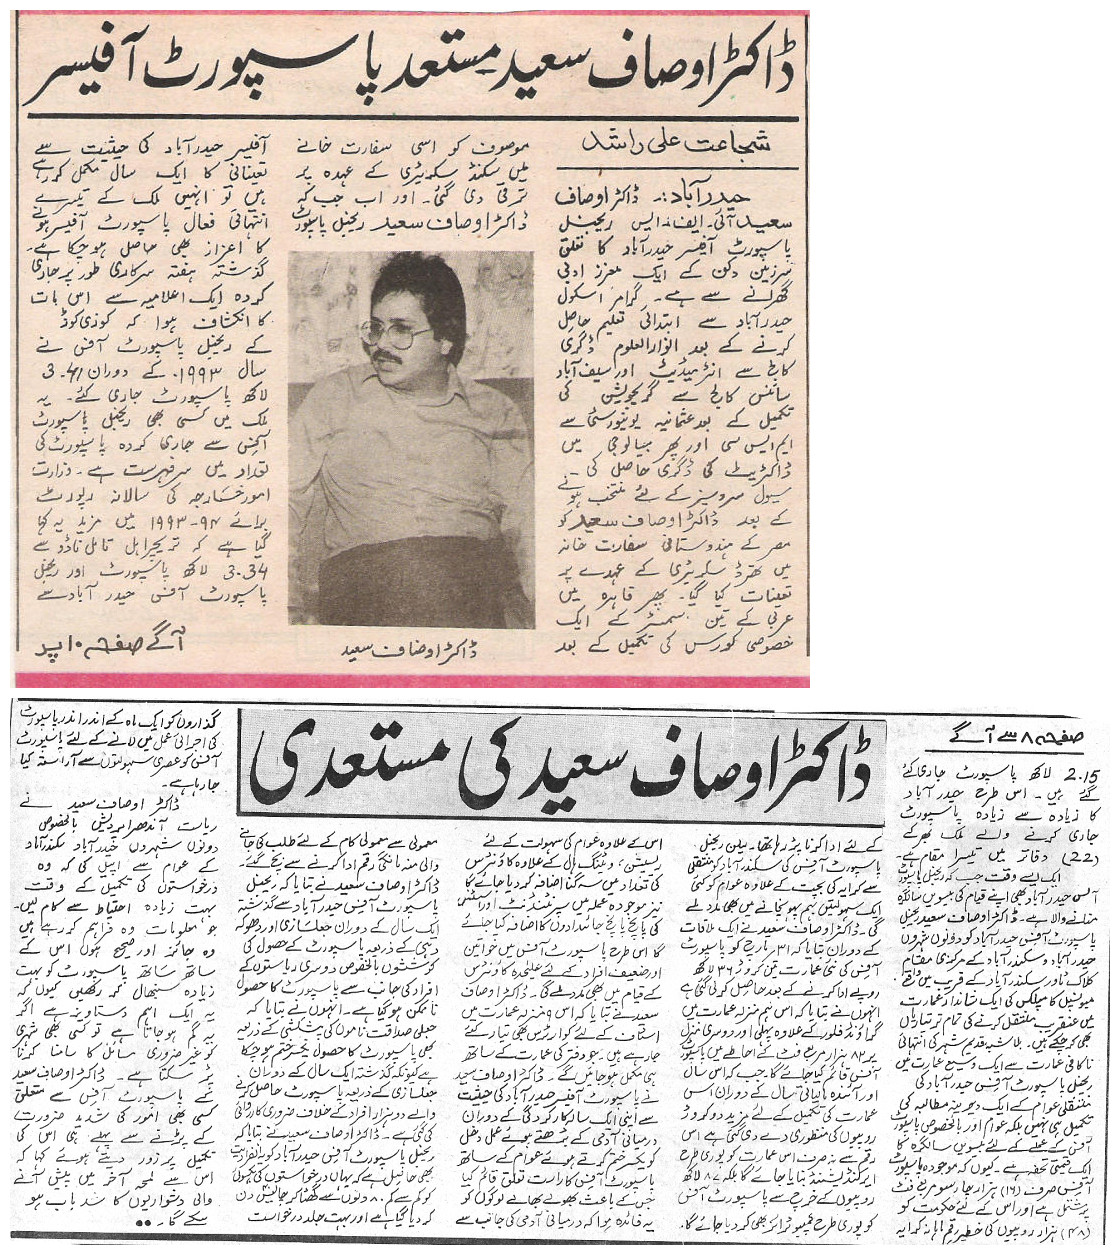 Ausaf Sayeed's interview by Shujat Ali Rashed - The Munsif Daily